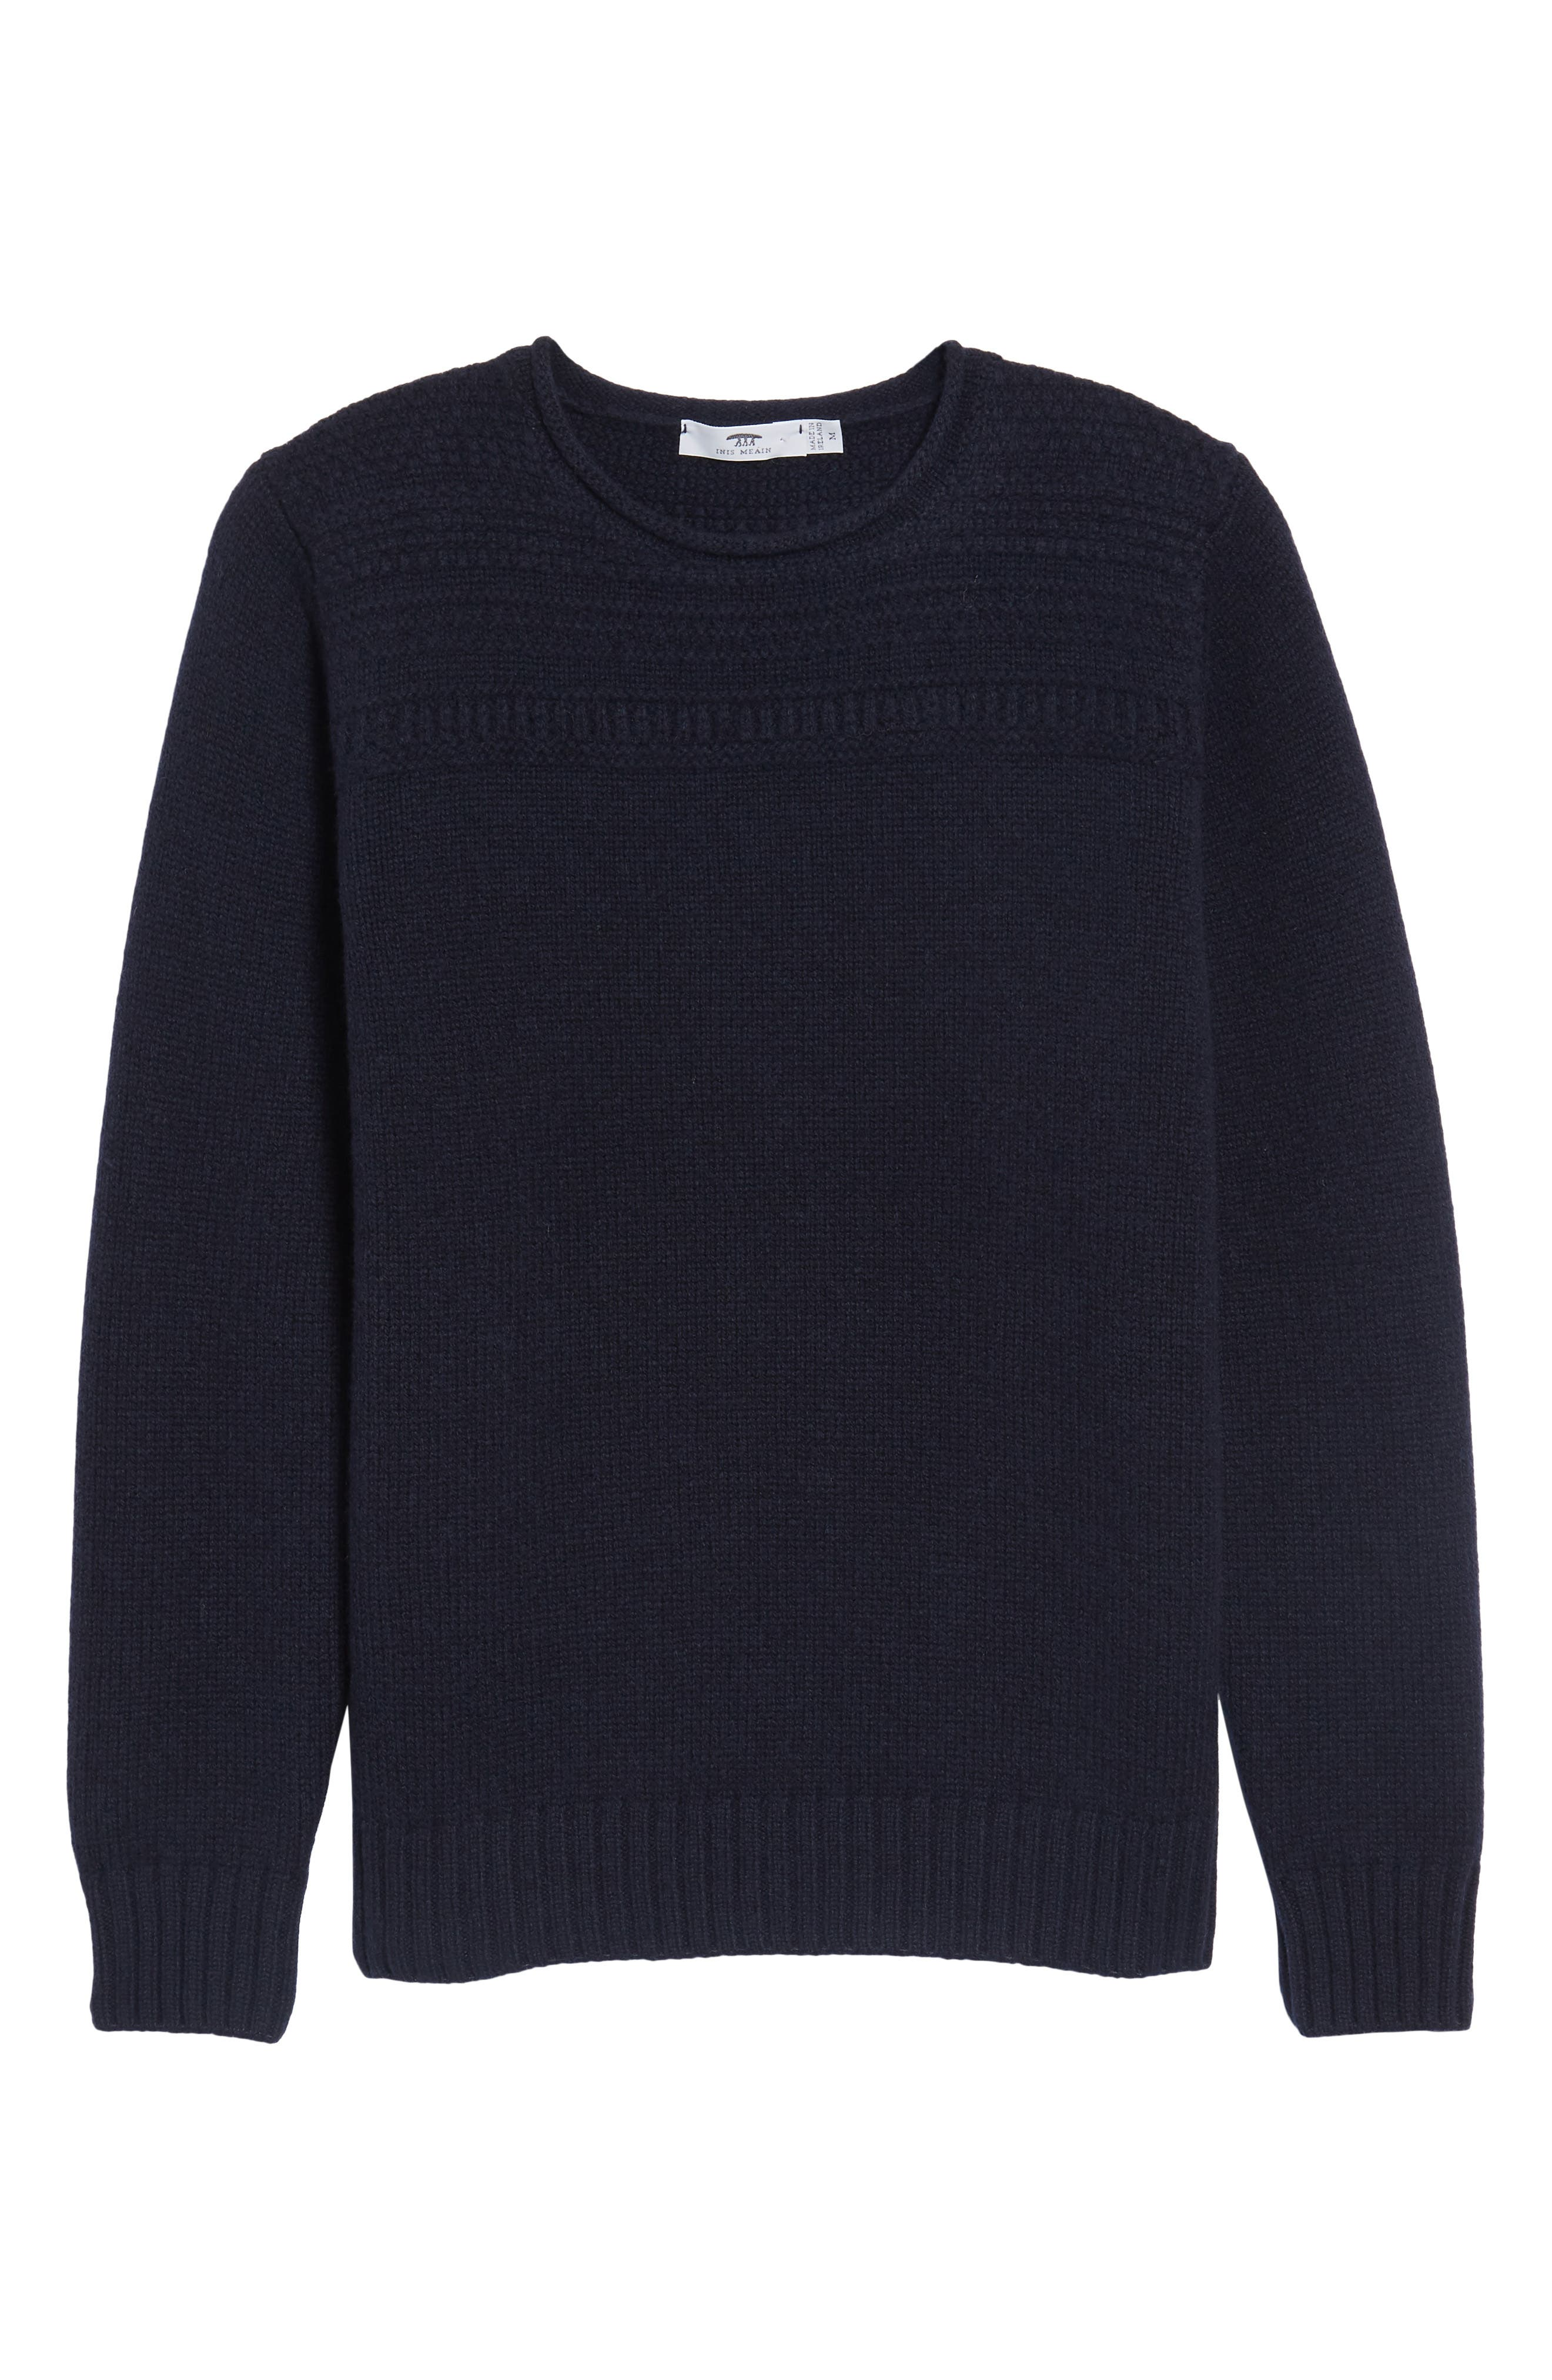 Roll Neck Wool Sweater,                             Alternate thumbnail 6, color,                             Navy